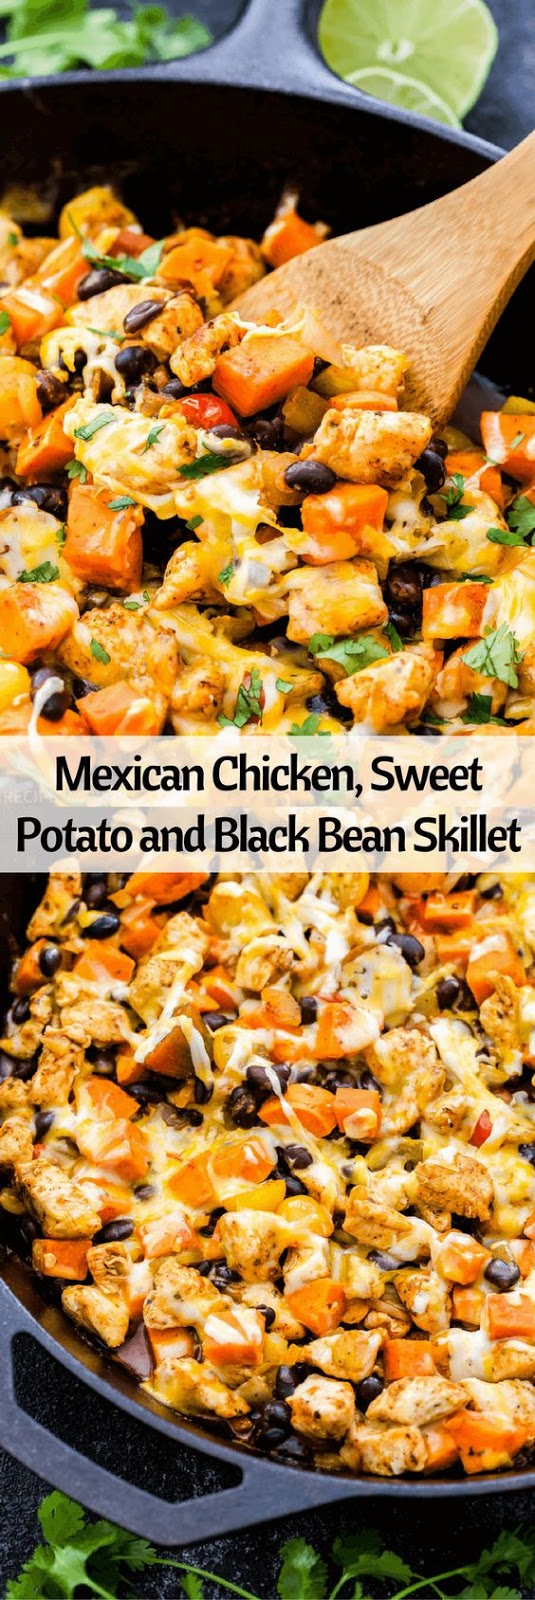 Easy Dinner With Mexican Chicken, Sweet Potato And Black Bean Skillet